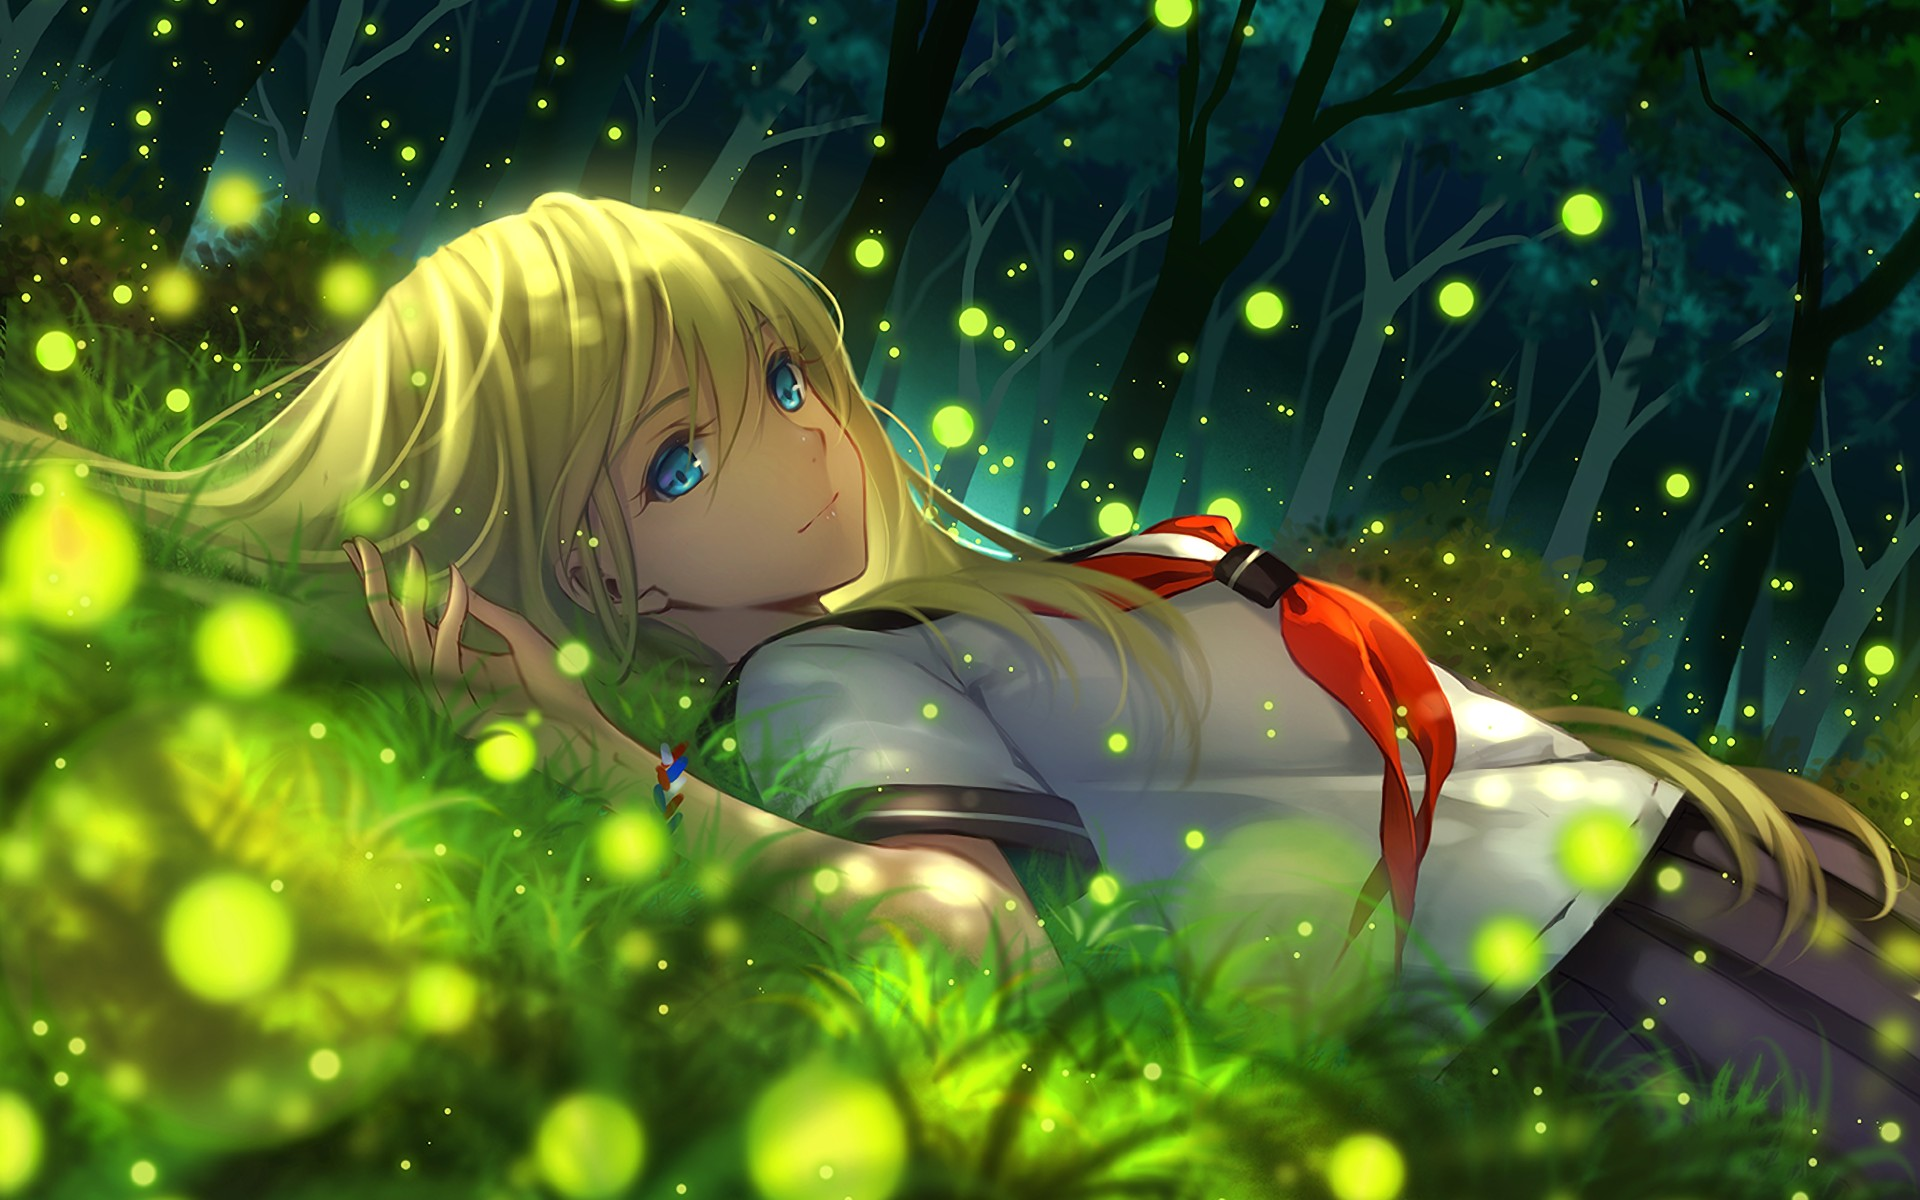 Anime wallpaper ·① Download free HD anime wallpapers for desktop, mobile, laptop in any